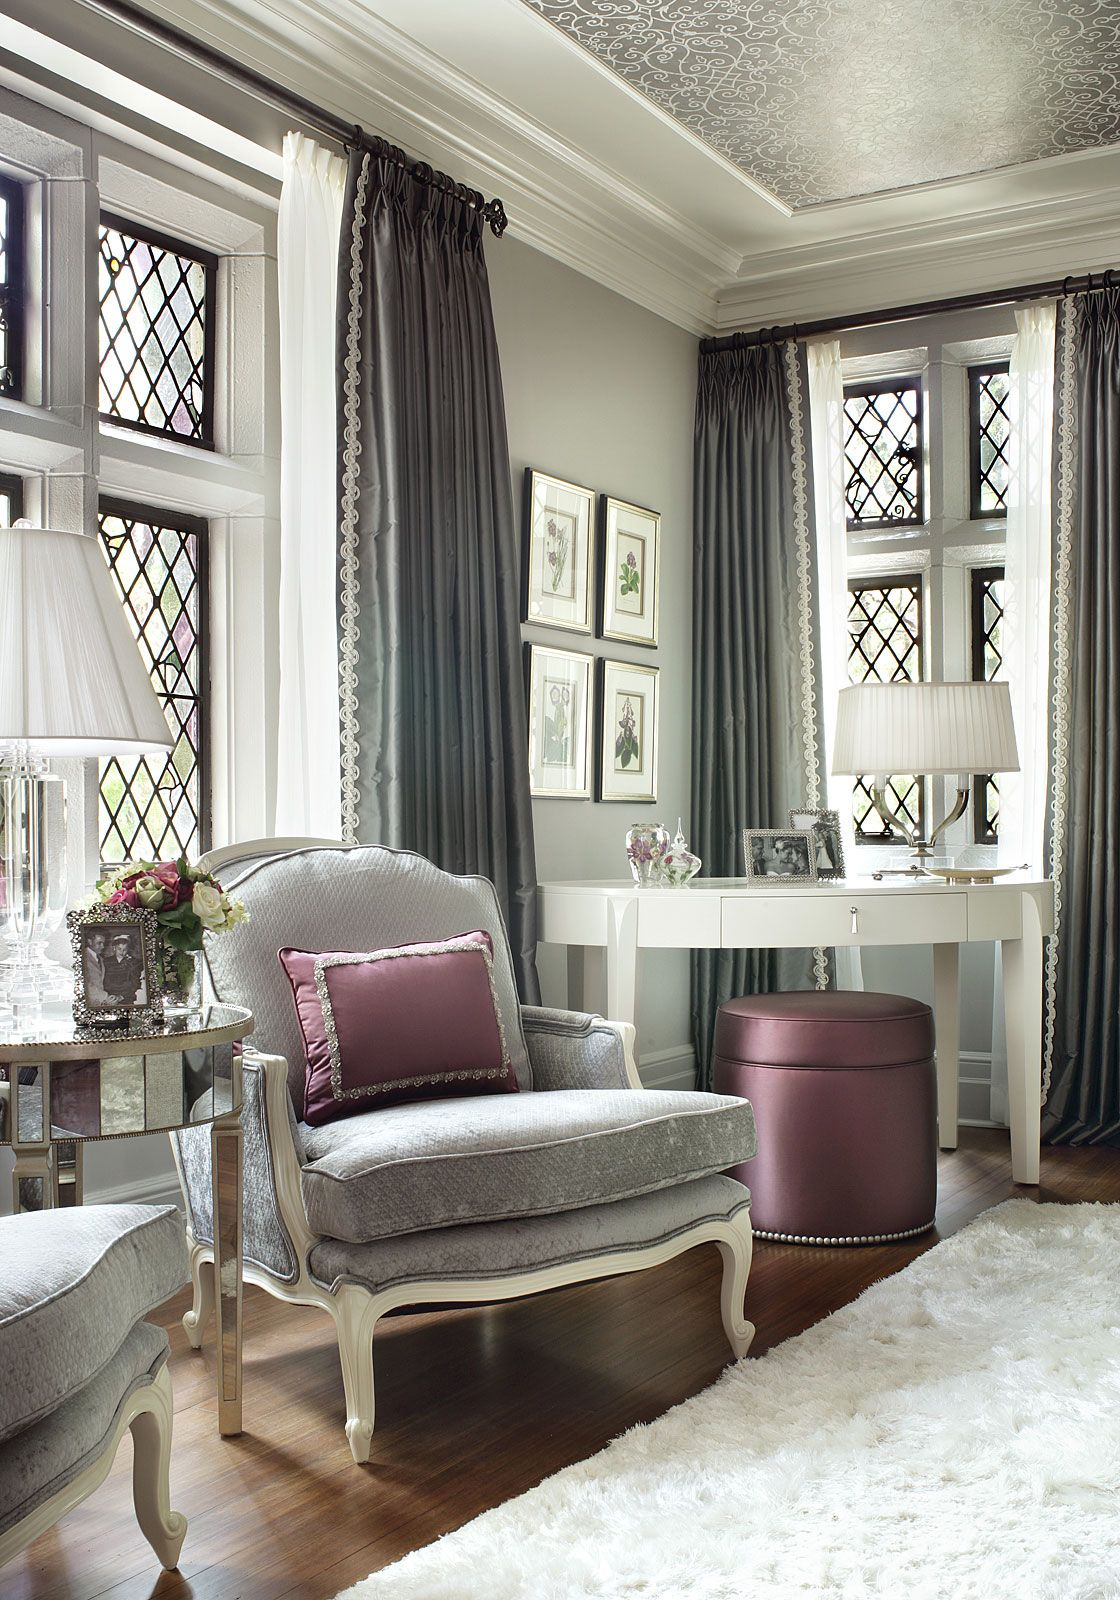 Successful ideas for improving the look of your home learn more by